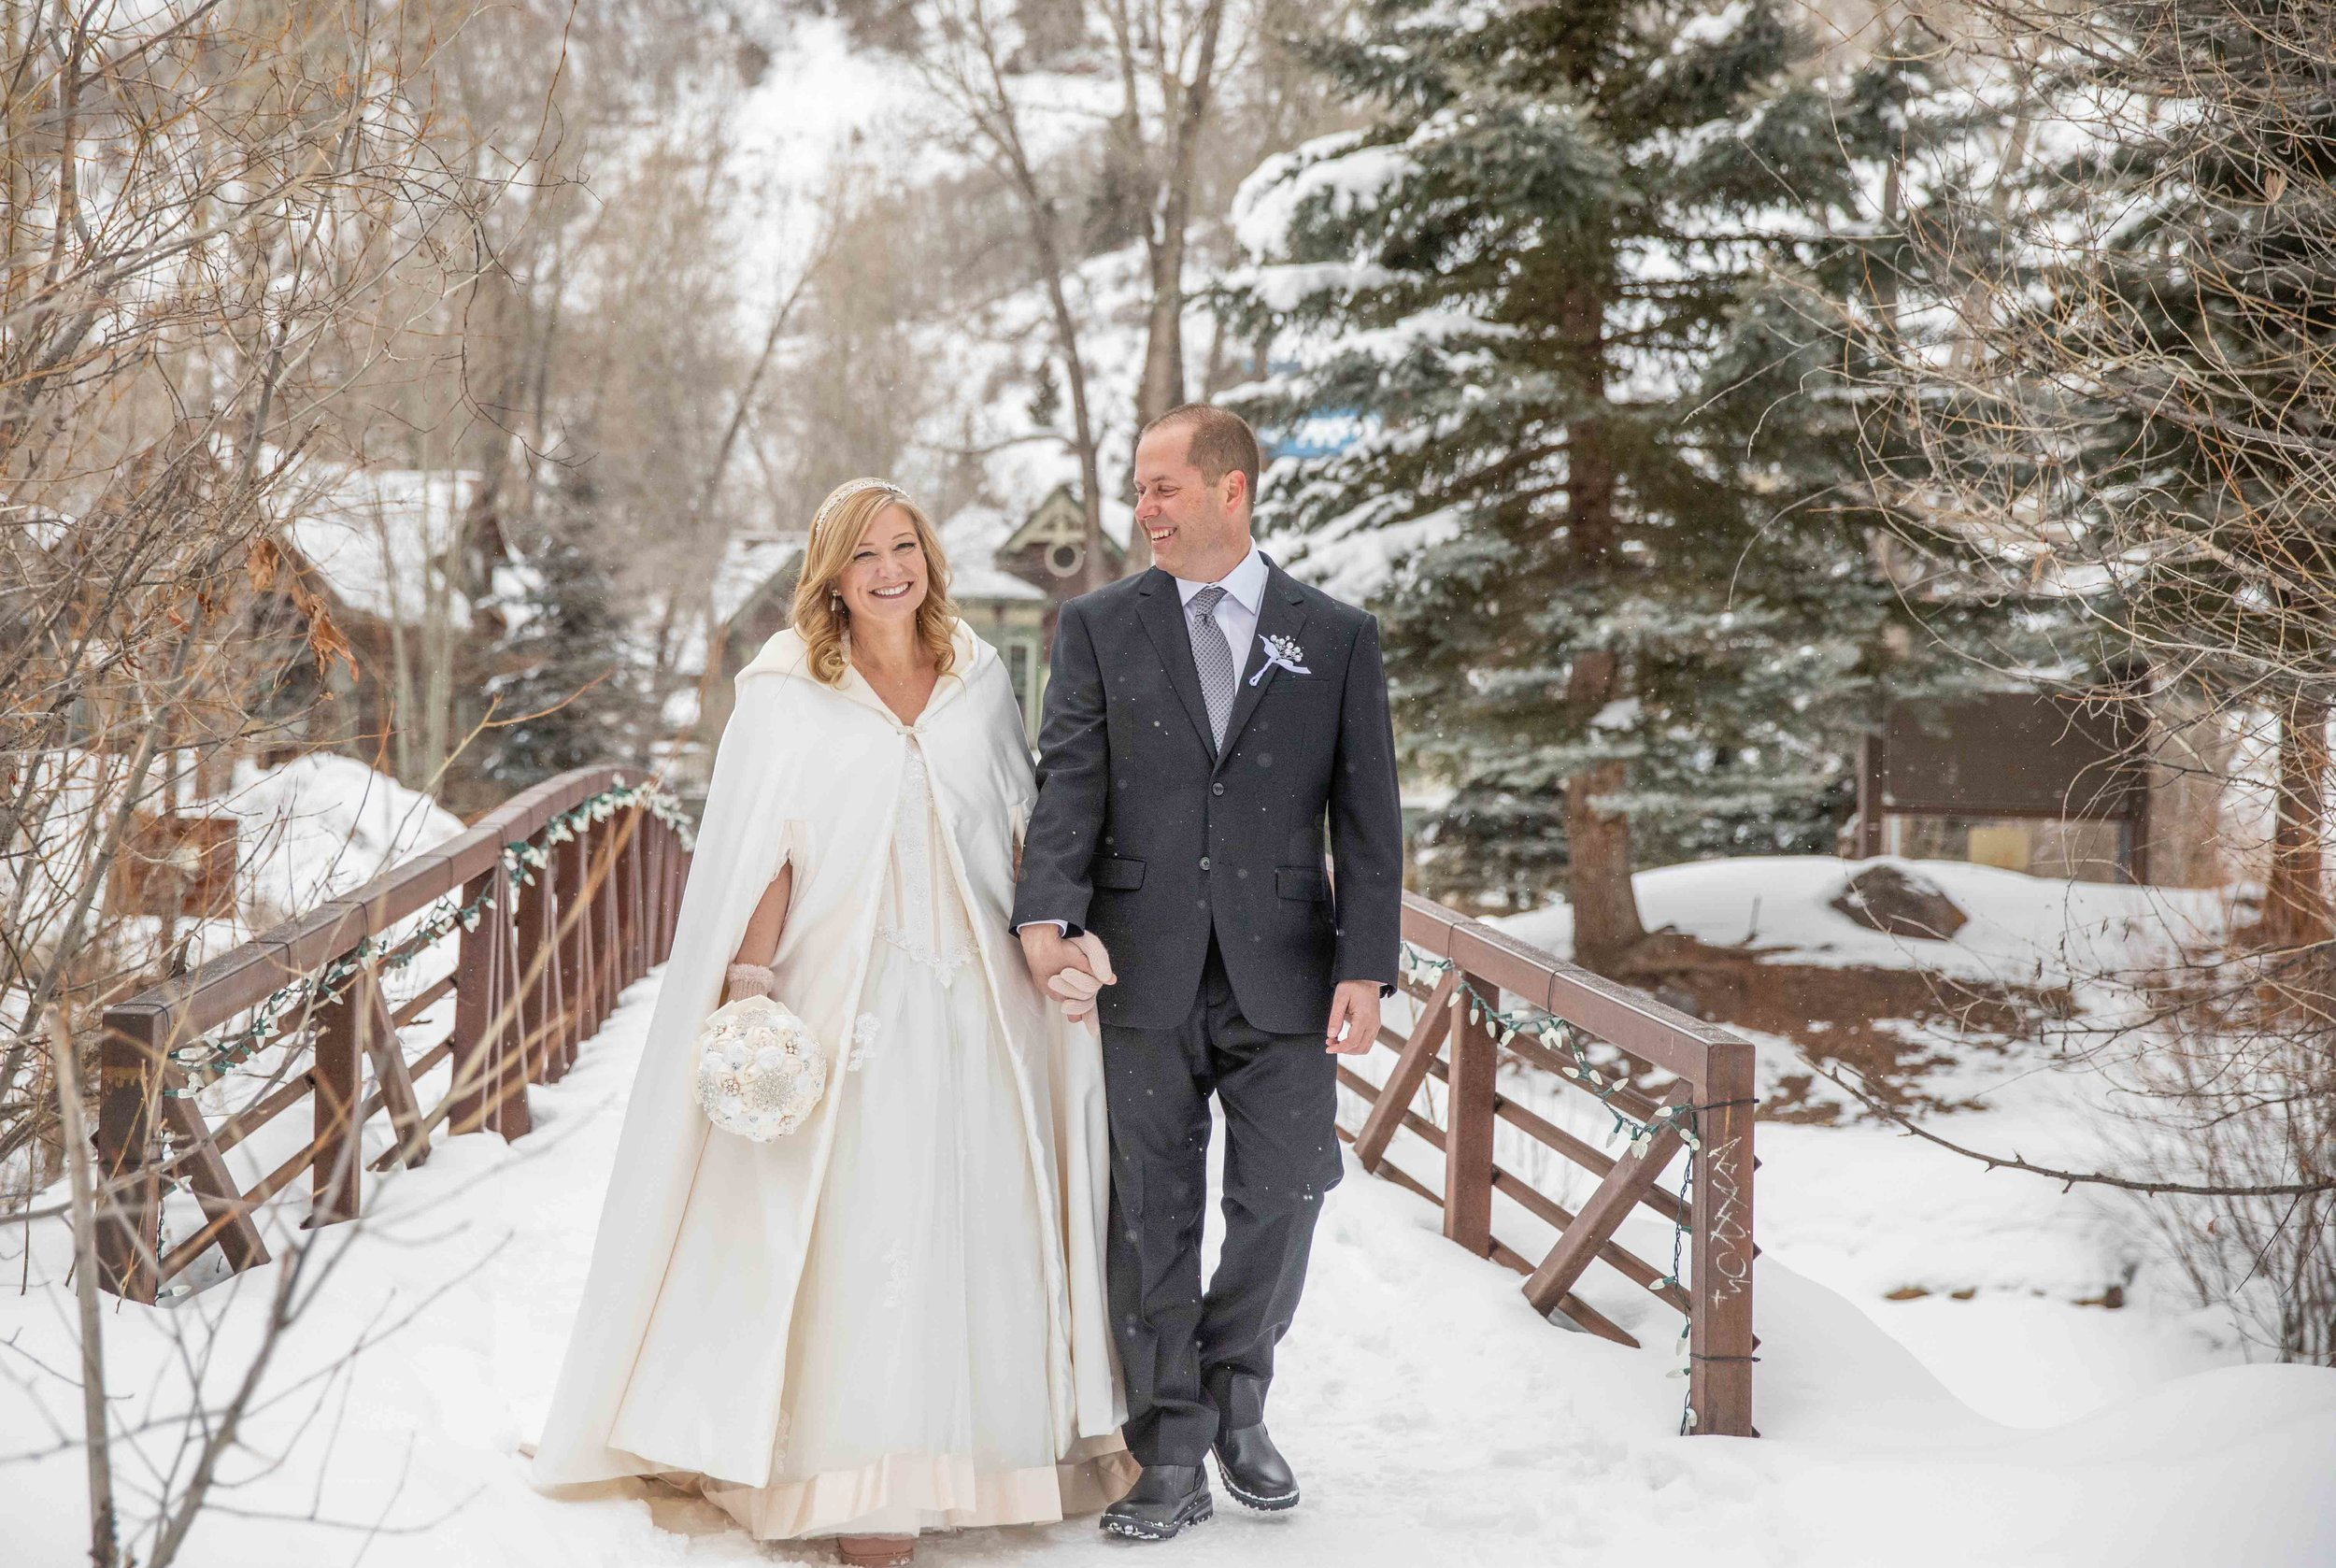 Kay & Craig - Lisa Marie was an amazing professional and an absolute blessing. She made our wedding photos magically enchanting. We have received countless admirations and accolades from our friends and family at how beautiful our winter wonderland bridge, ski lift, and Telluride town photos came out. We can't thank you enough for bringing the umbrellas and rolling with the snow storm without skipping a beat. We heartily recommend Lisa Marie to shoot your special event and to capture those candid moments so perfectly.